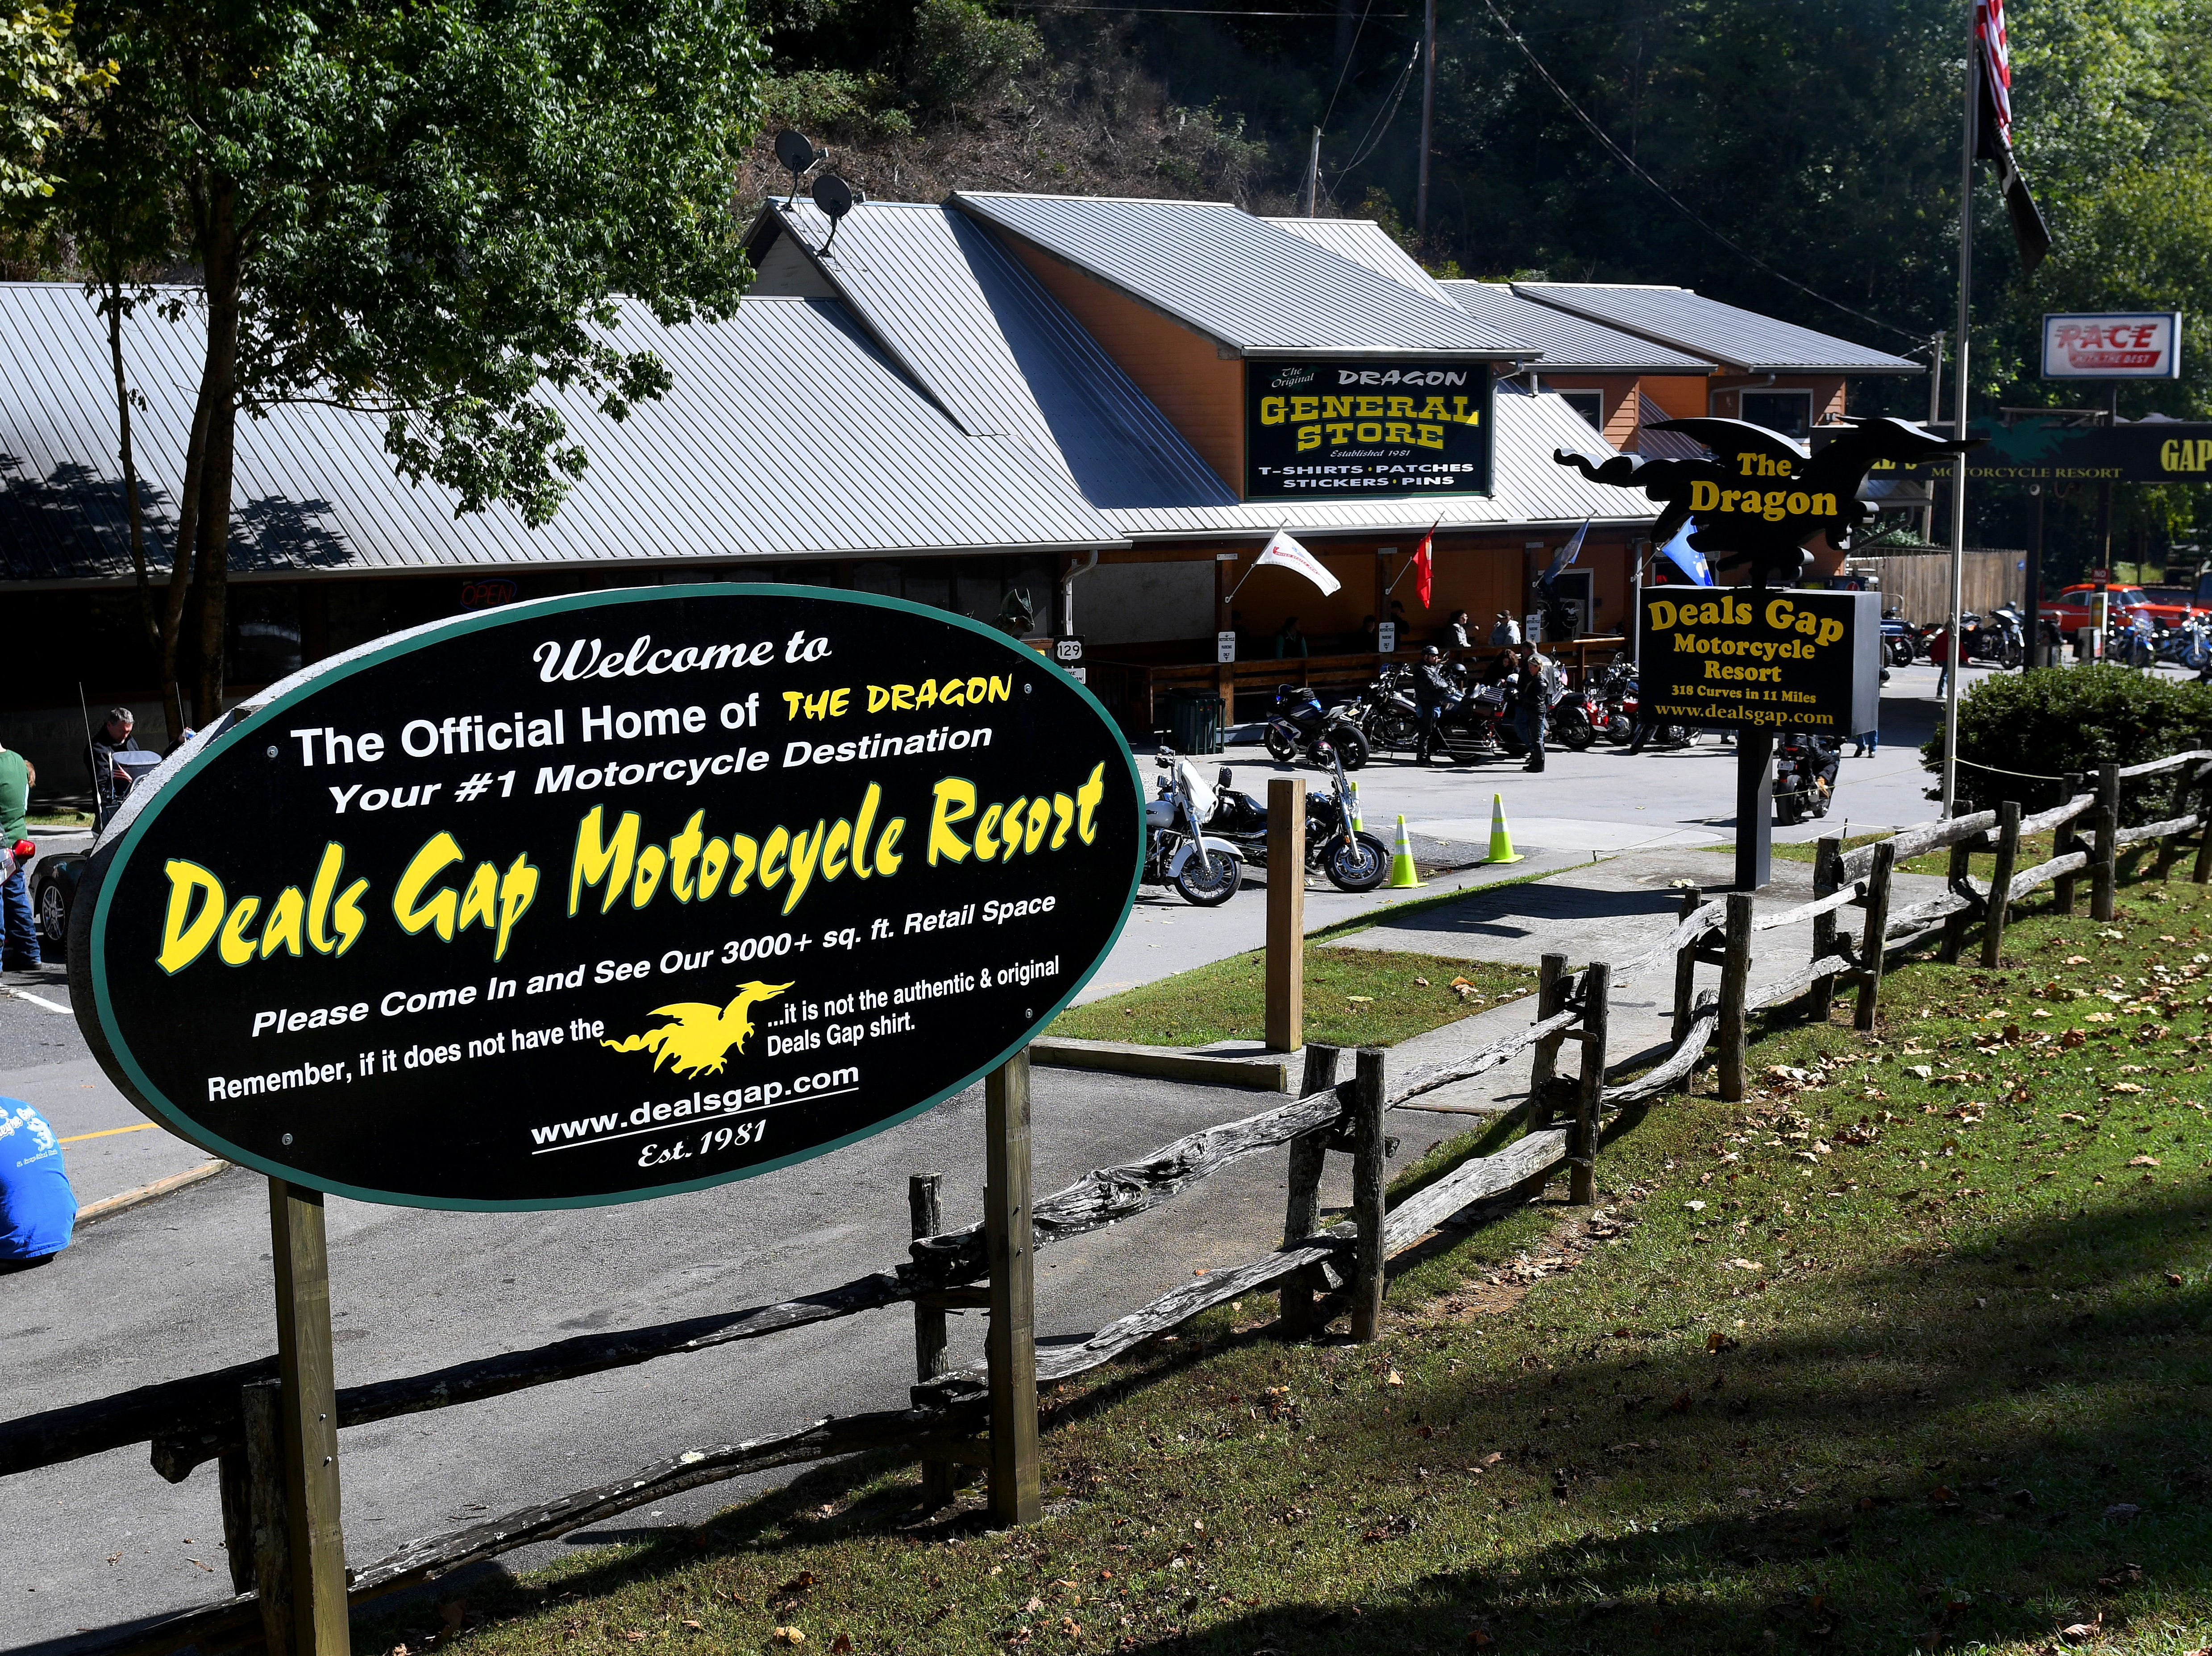 Deals Gap Motorcycle Resort at Deals Gap, NC is the turn around point for many riding or driving the Dragon  Saturday, Oct. 13, 2018. Deals Gap is the only place where you can get gas, food, and lodging on the Dragon. The Dragon is a section of US129 in Tennessee and North Carolina famous for it's 318 curves in 11 miles.